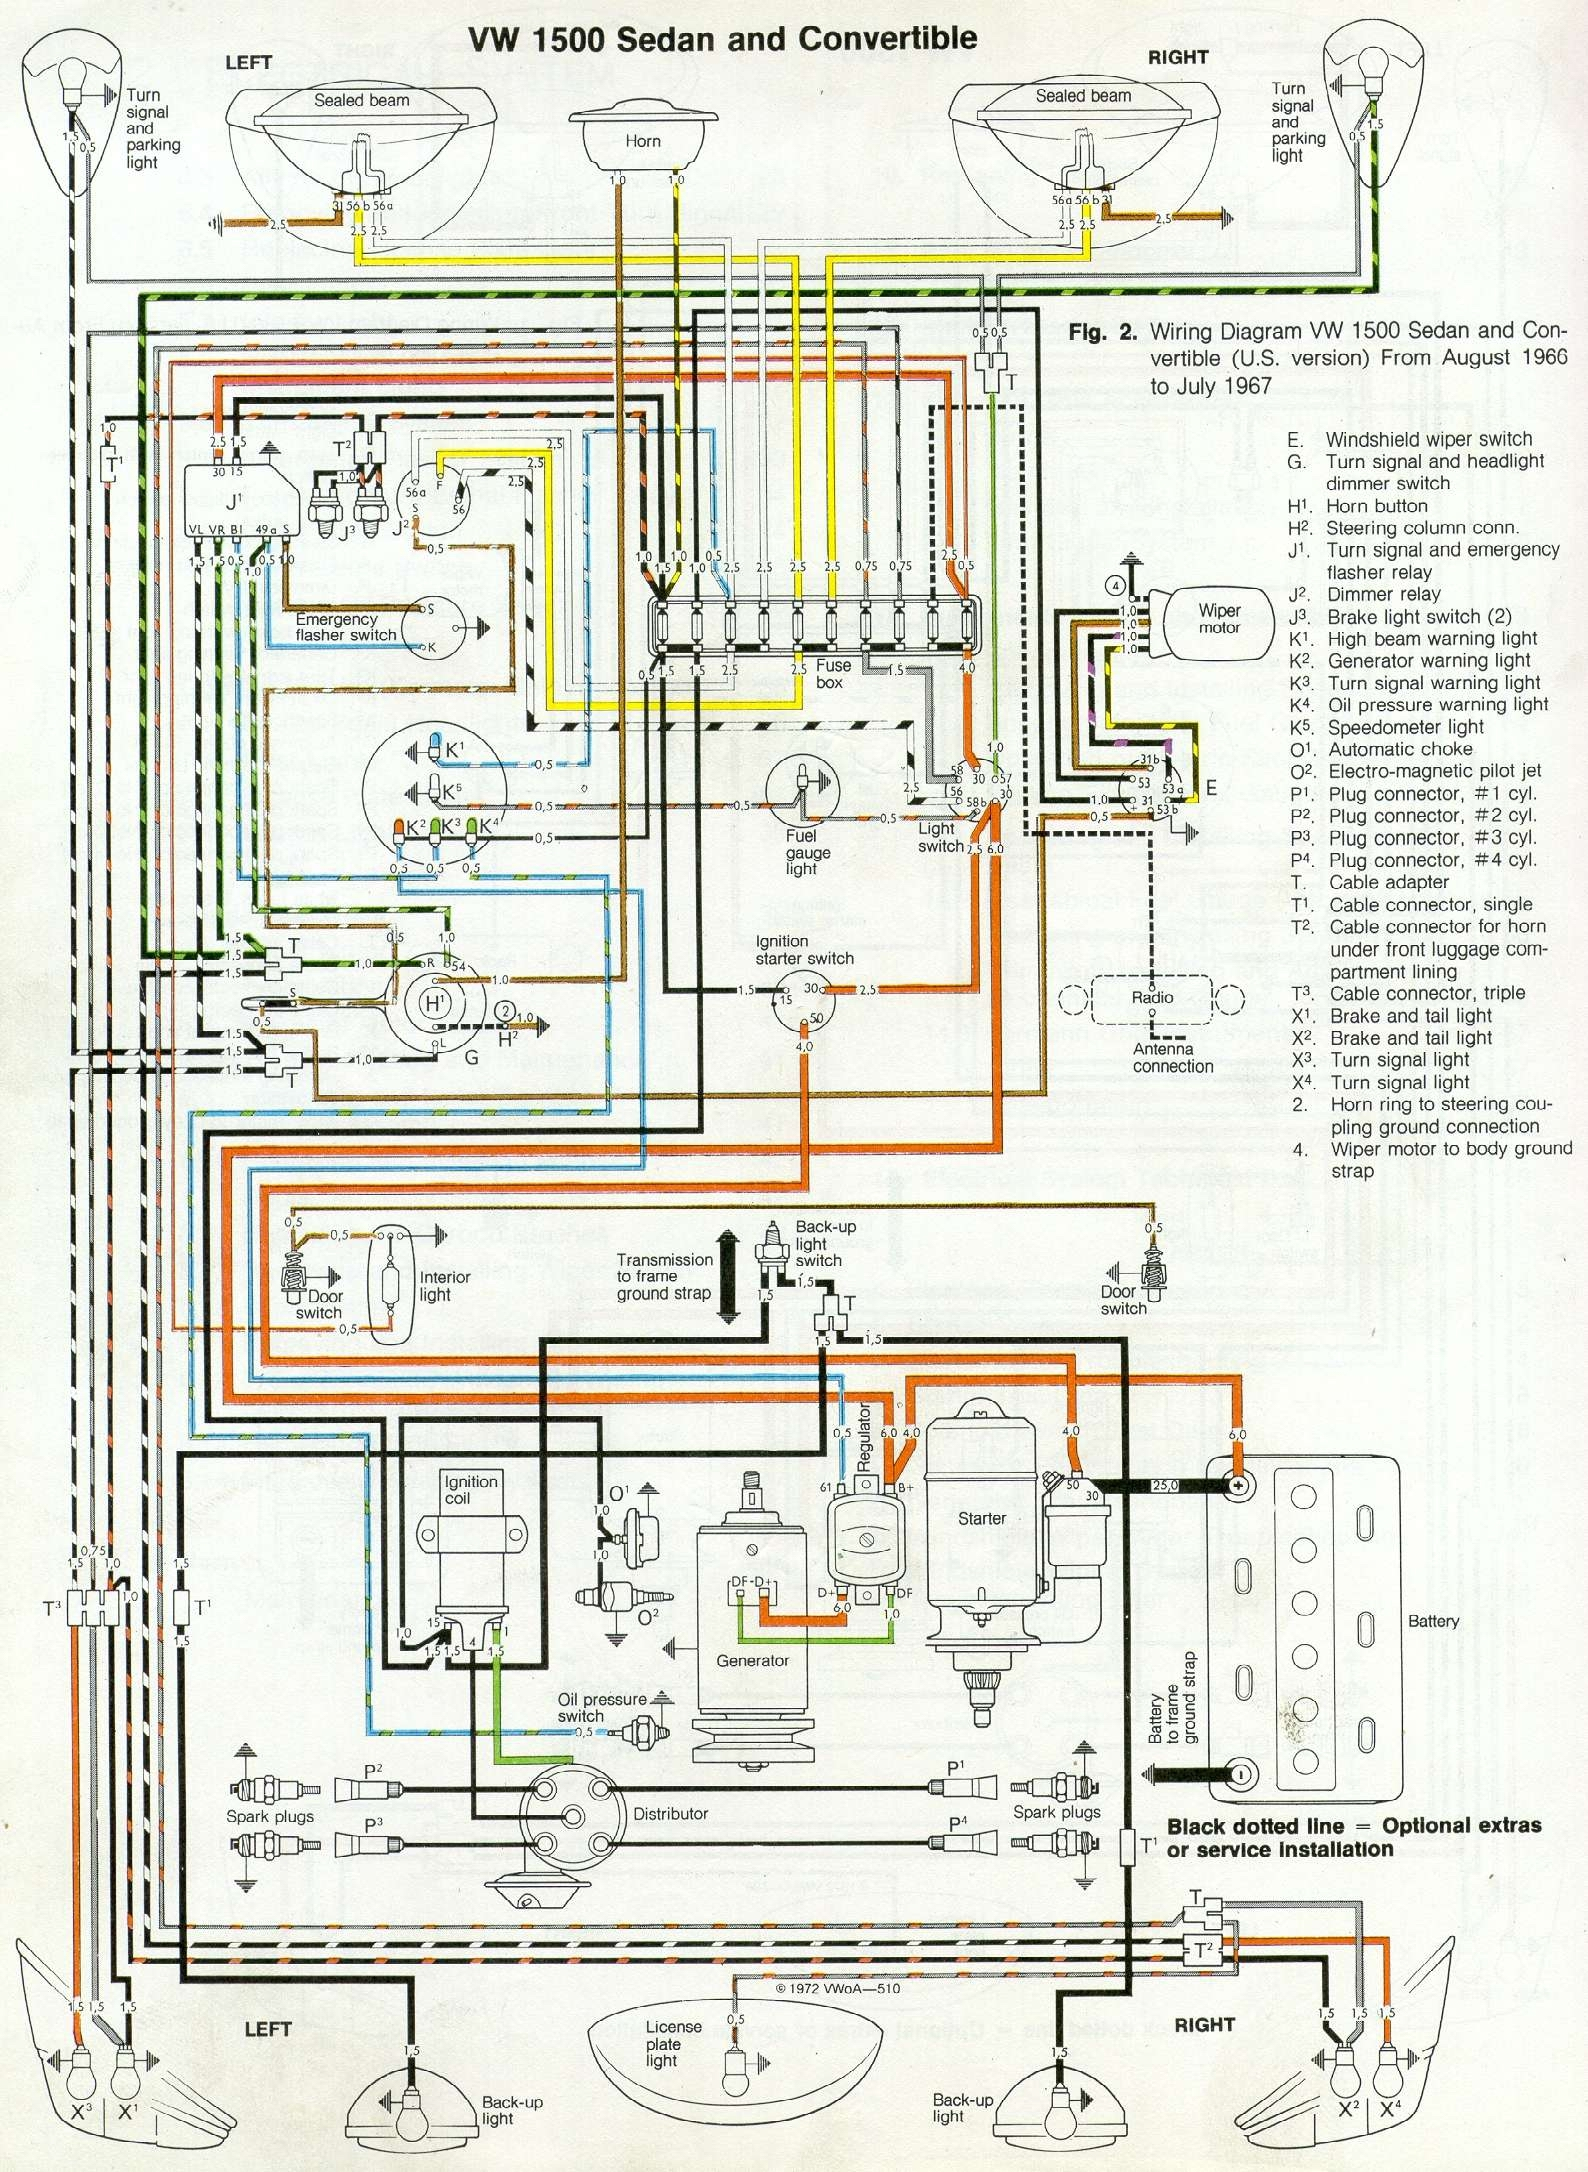 66 and 67 vw beetle wiring diagram 1967 vw beetle rh 1967beetle com vw beetle wiring cover vw beetle wiring